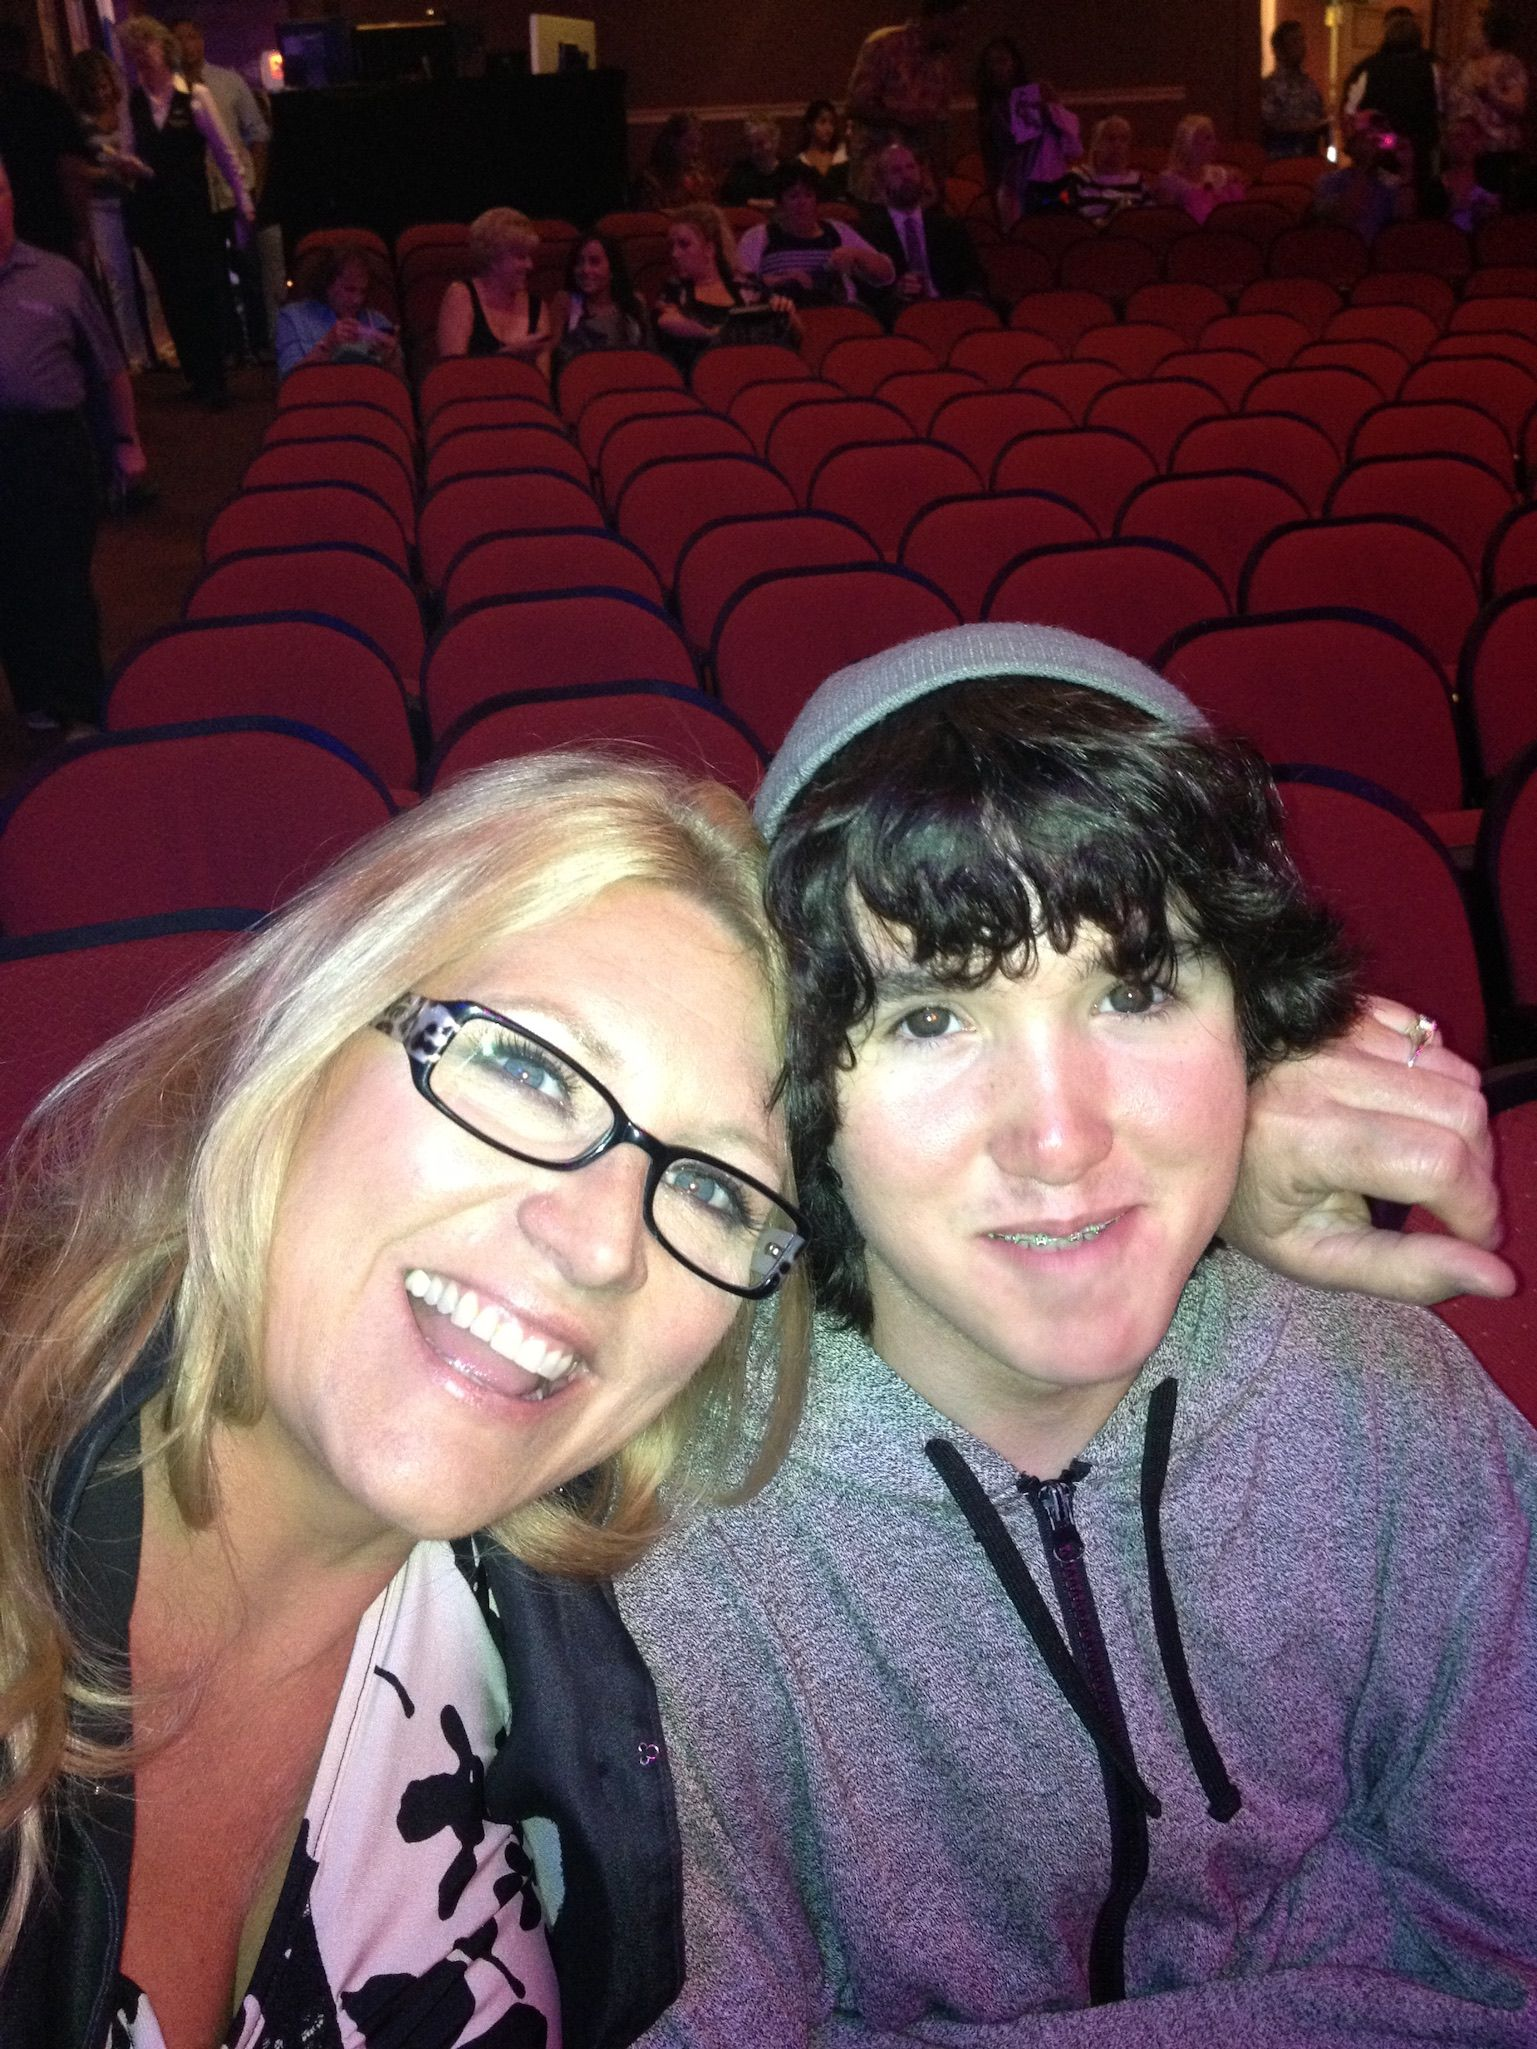 Radio Host Delilah on the Death of Her Son - One Heart at a